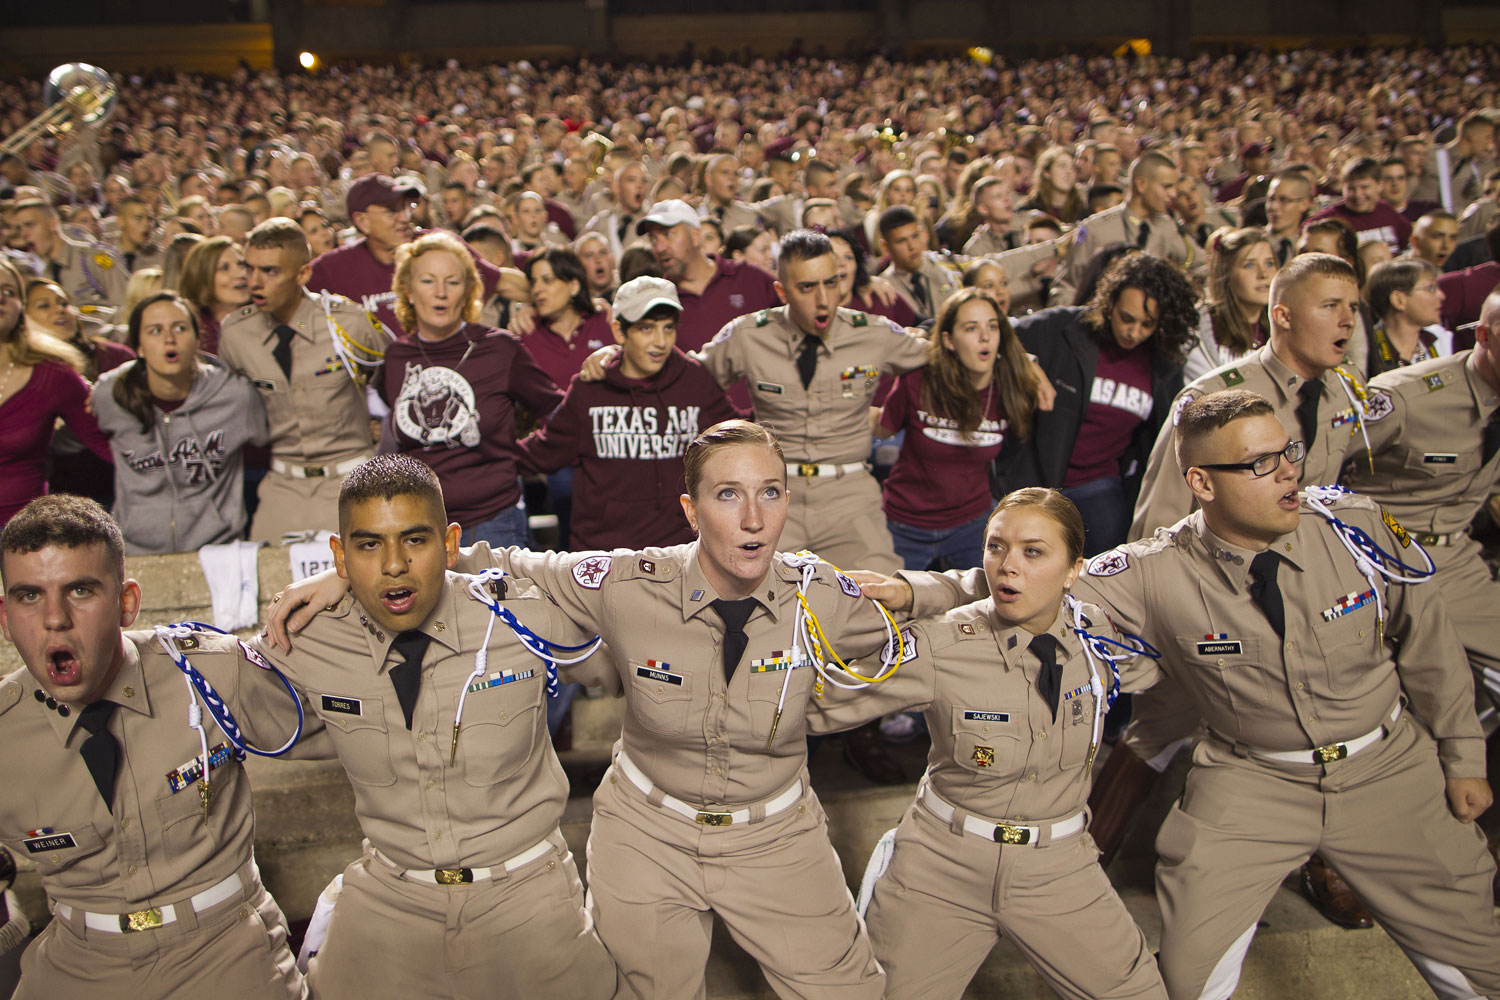 Texas A&M fans cheer on their team during a November 2010 game against Nebraska in College Station.